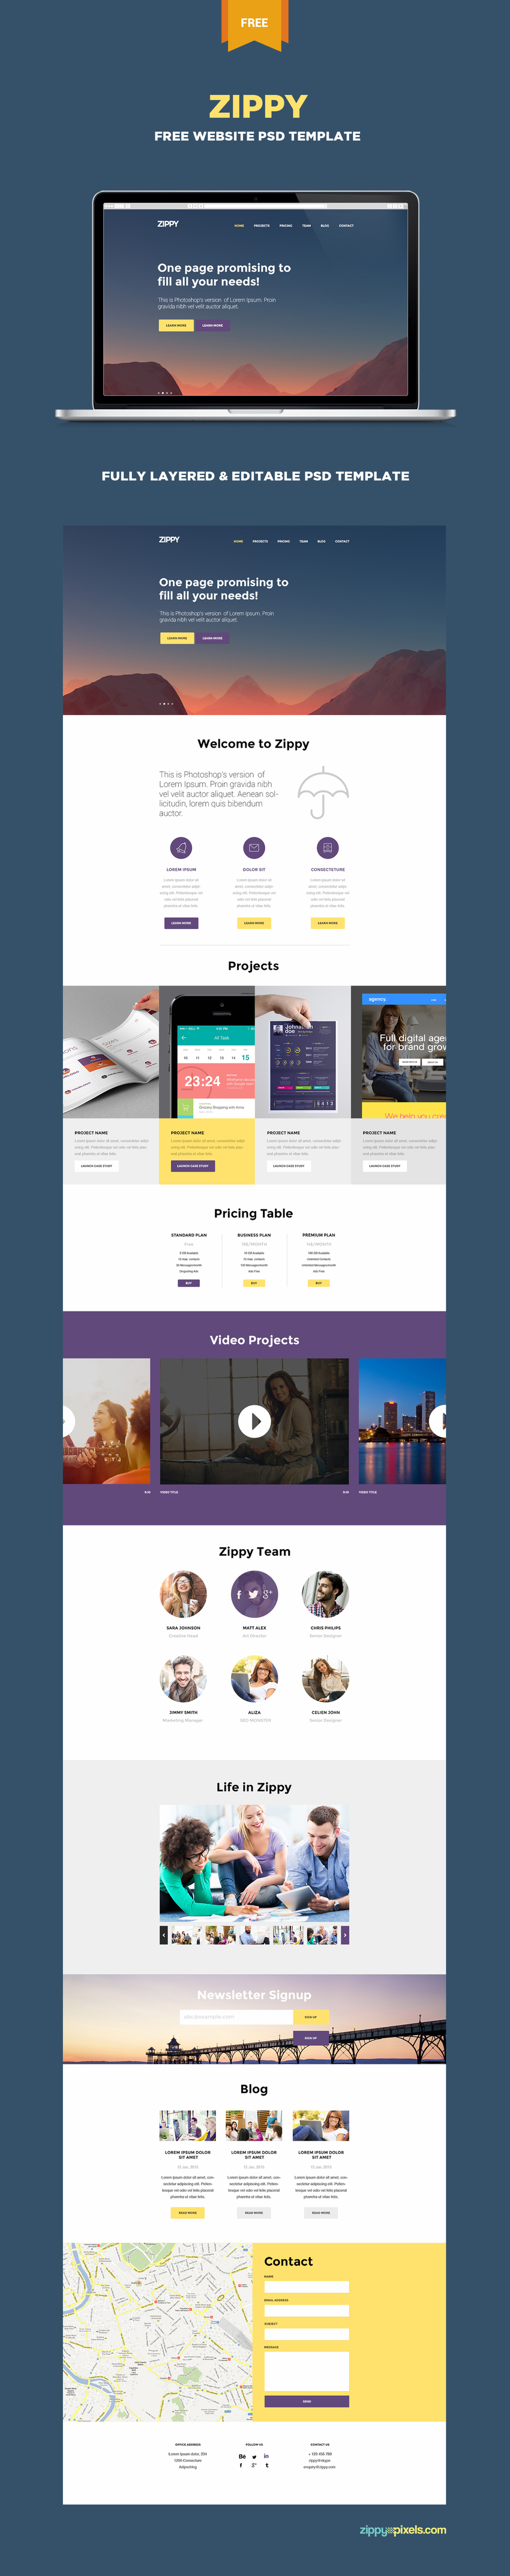 free-one-page-website-template-2